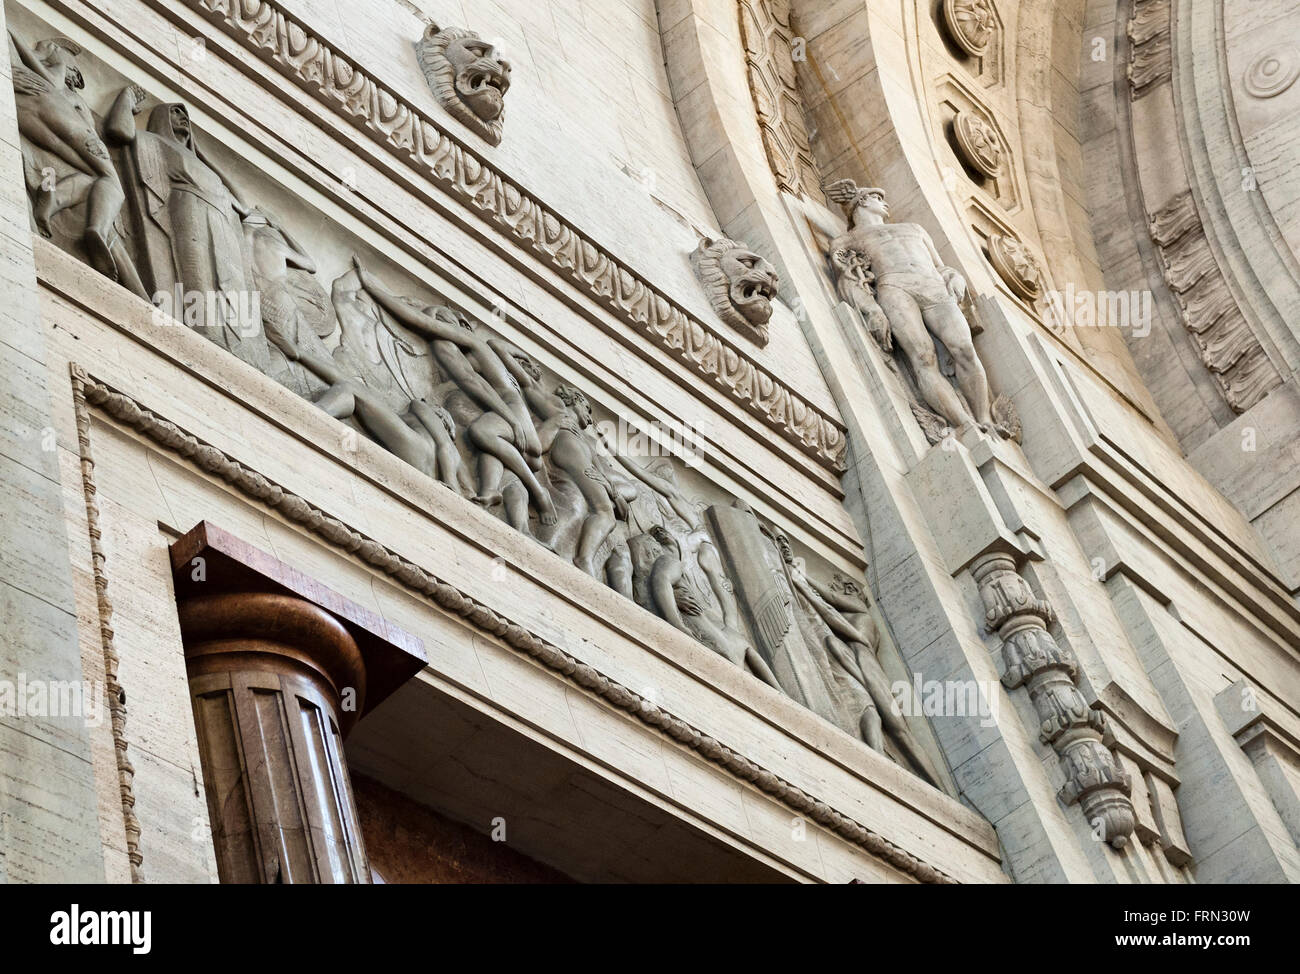 Milan railway station (Milano Centrale), Italy, completed in 1931. A frieze showing an episode from Roman history - Stock Image